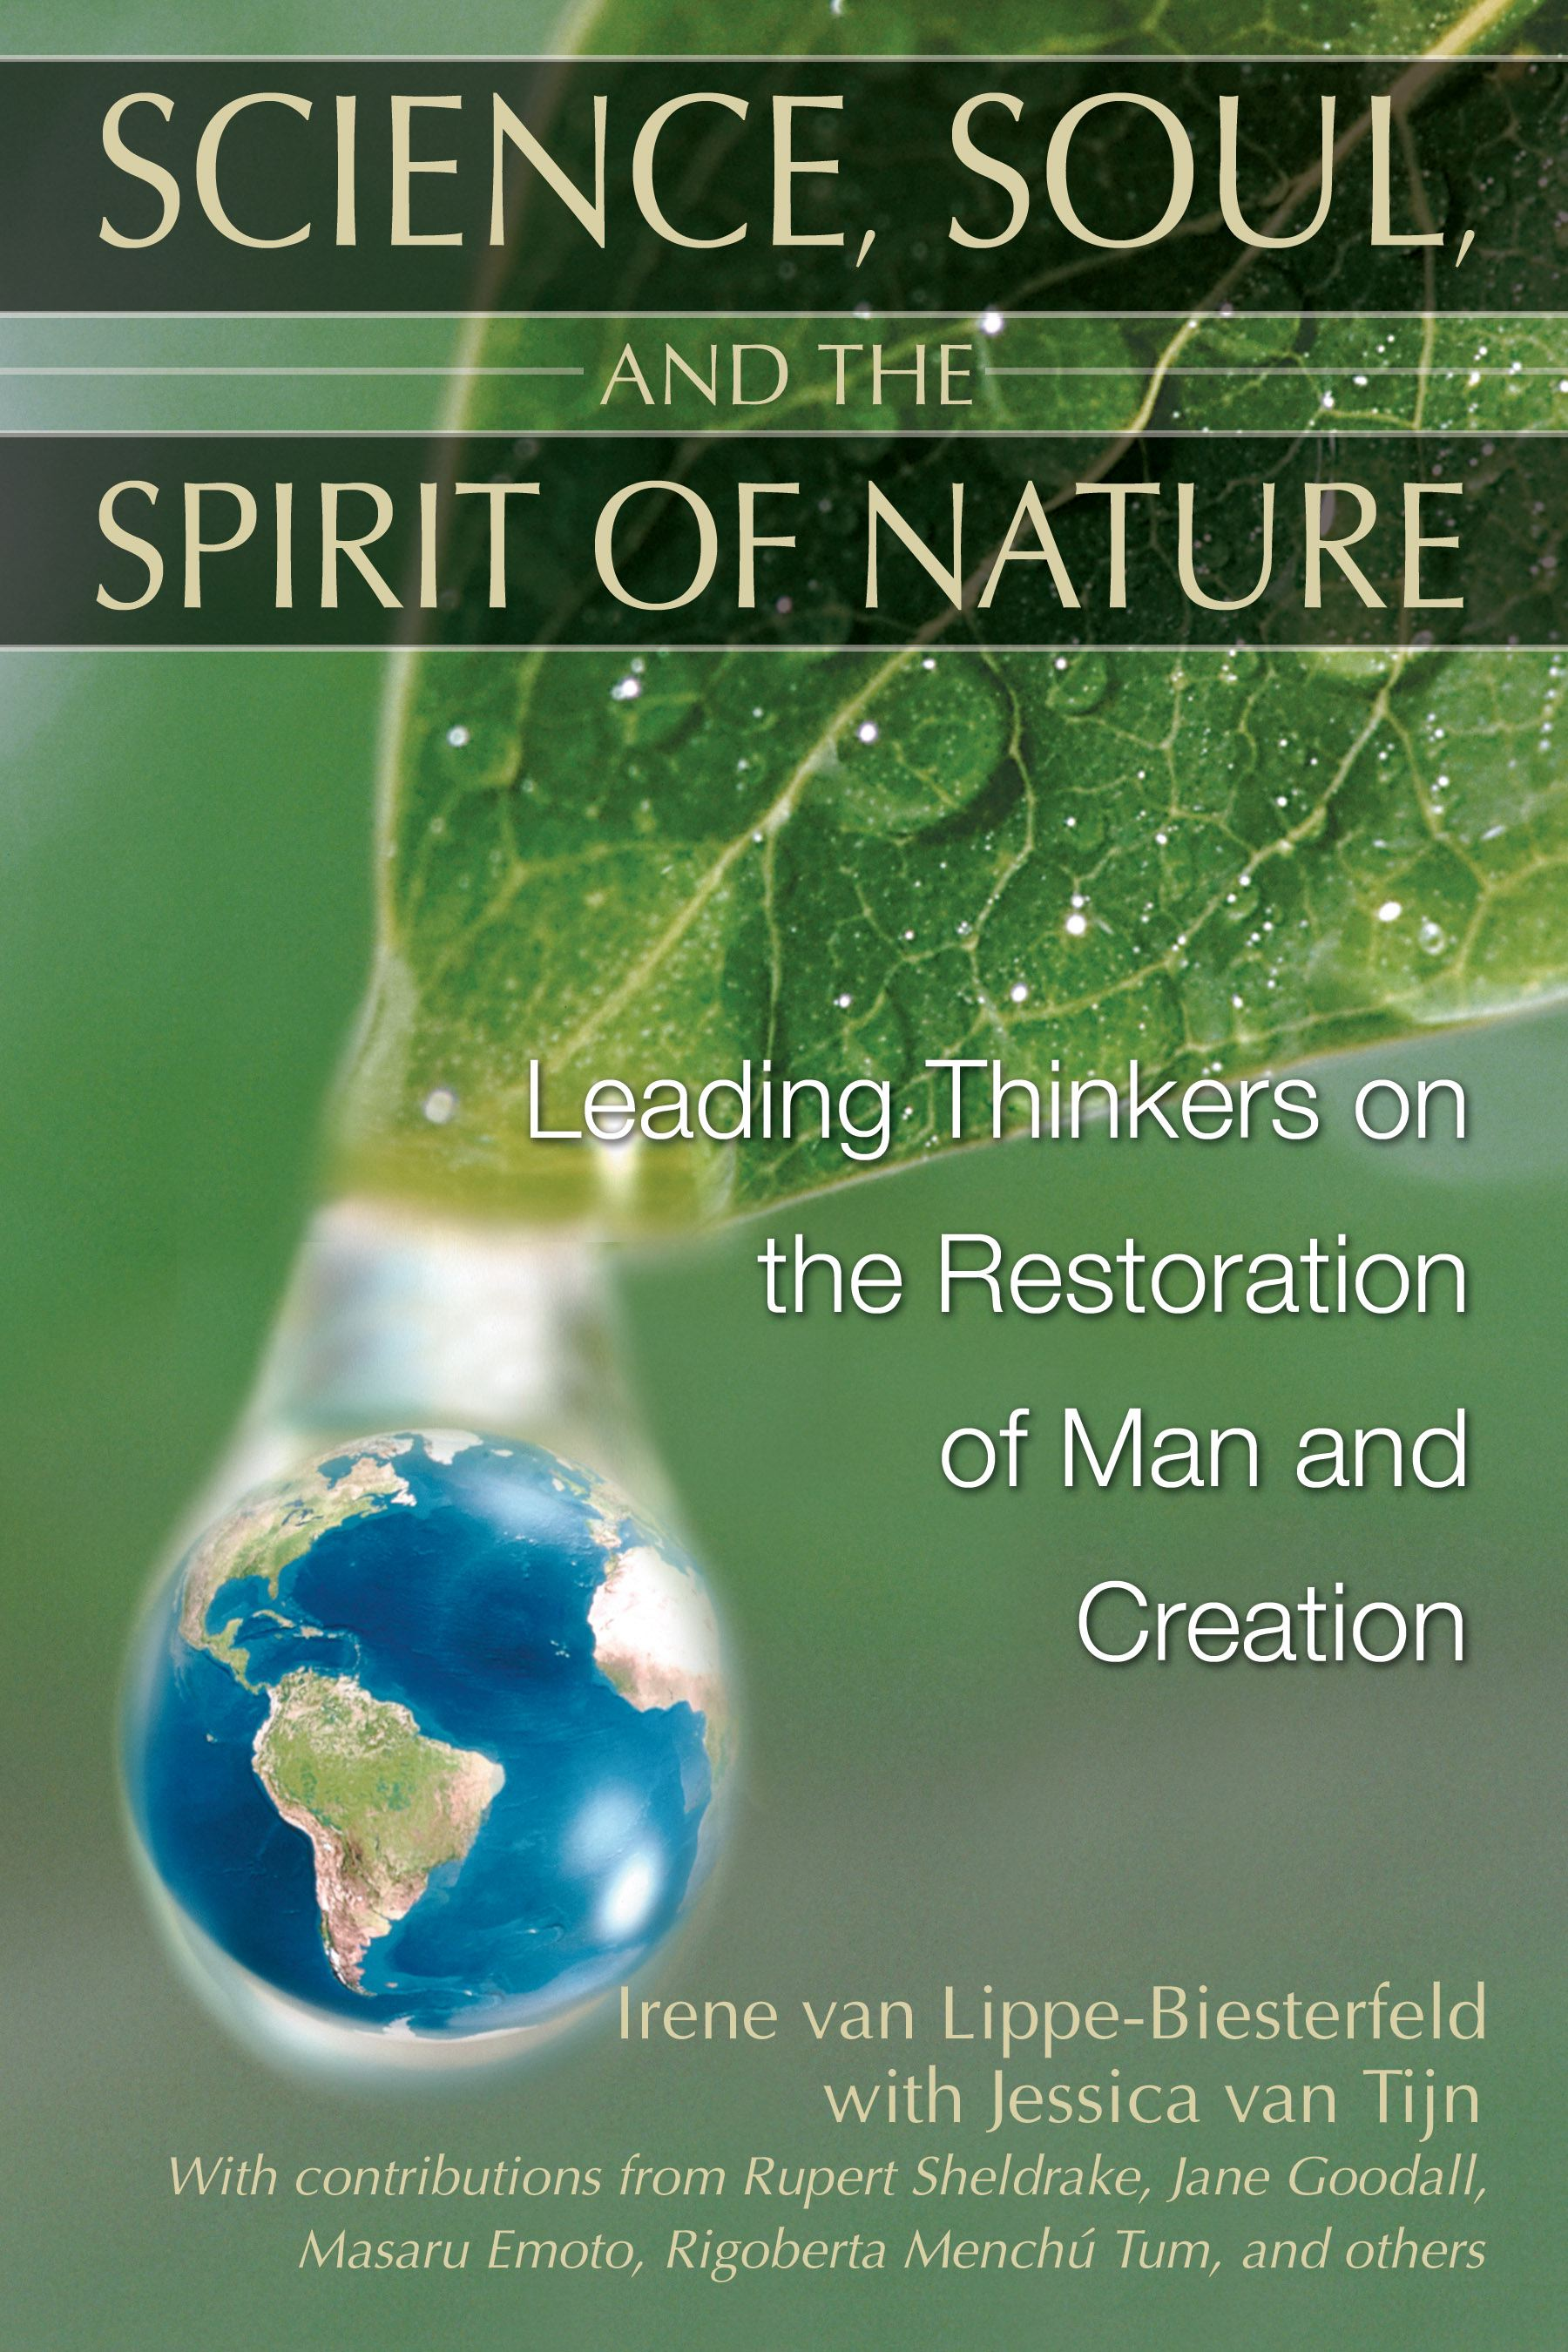 Science-soul-and-the-spirit-of-nature-9781591430551_hr